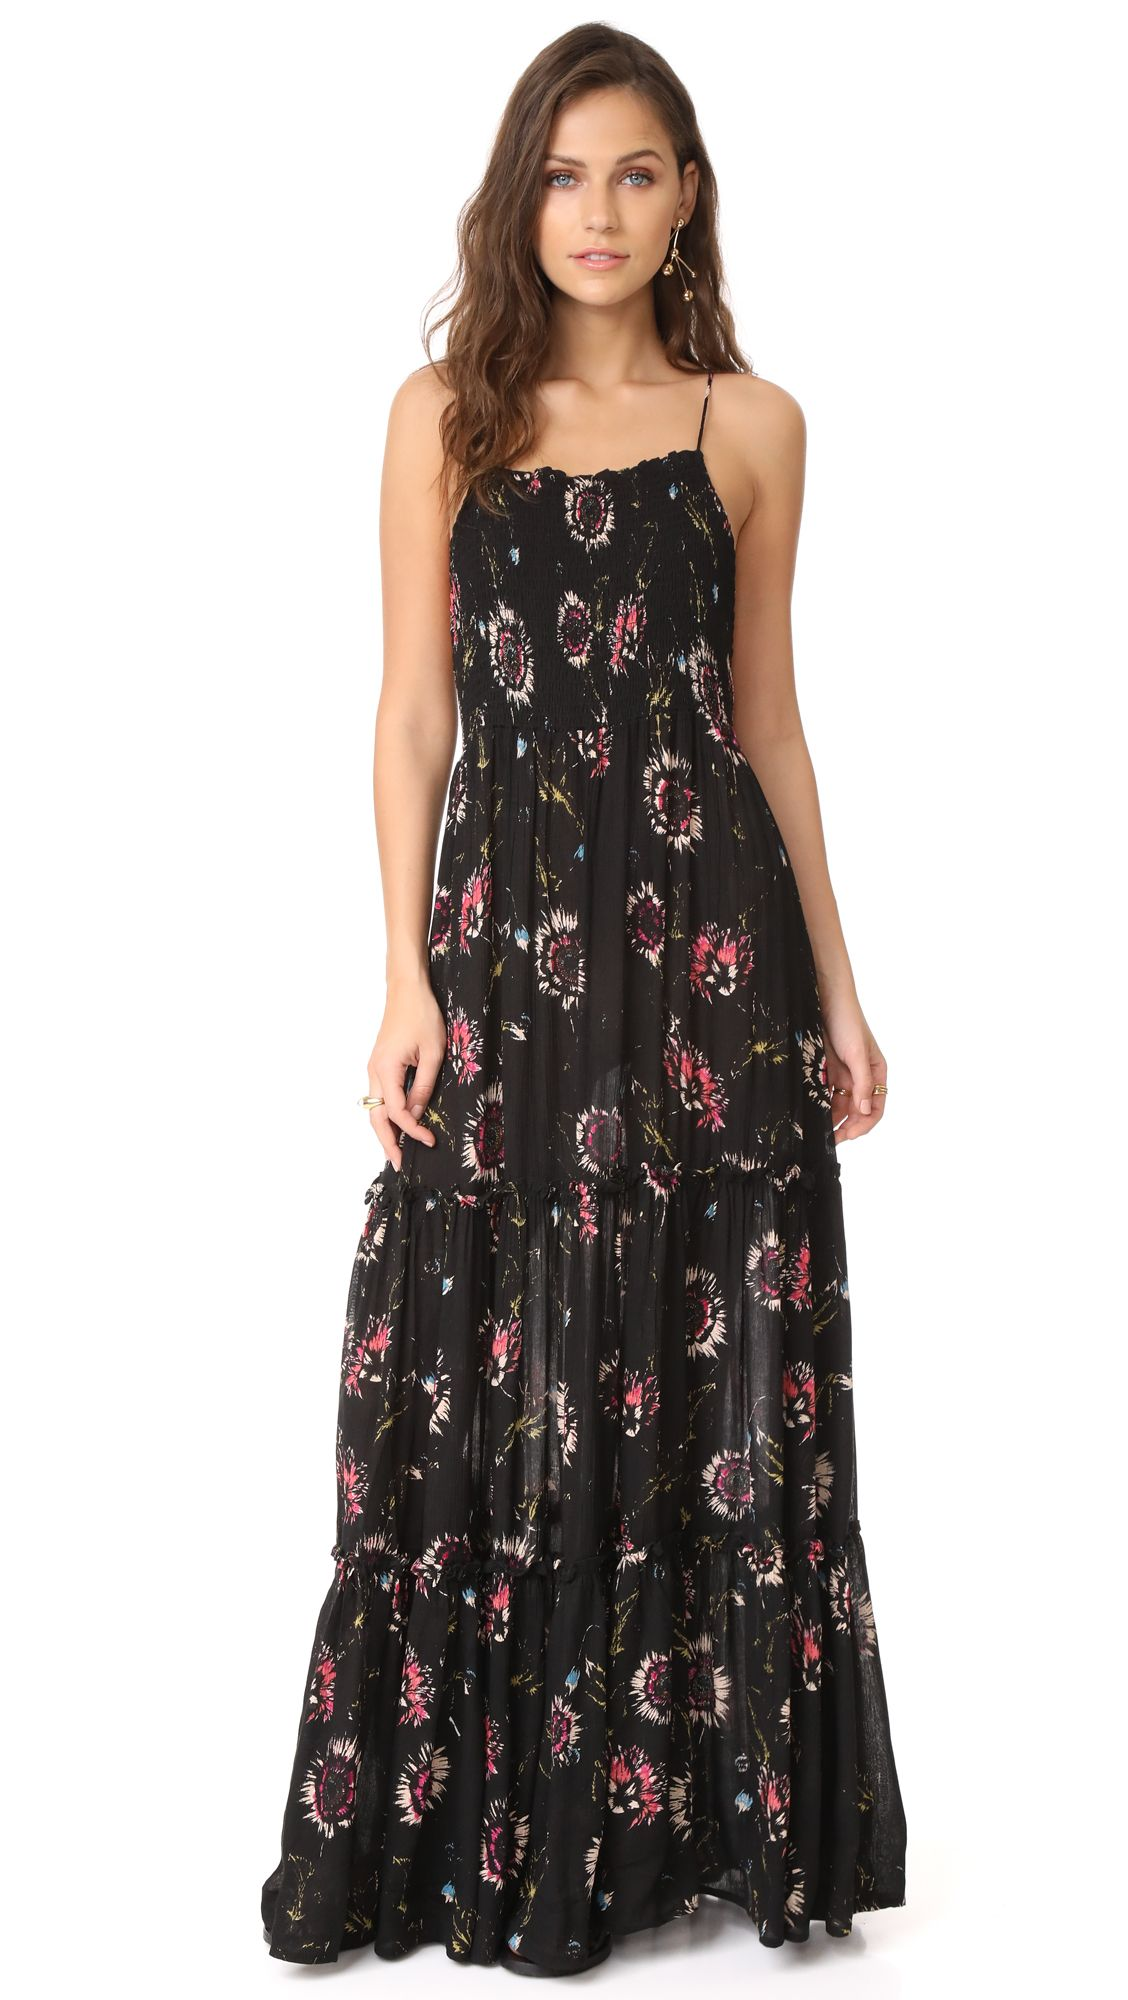 Garden Party Maxi Dress, Black Combo | Free People | Pinterest ...